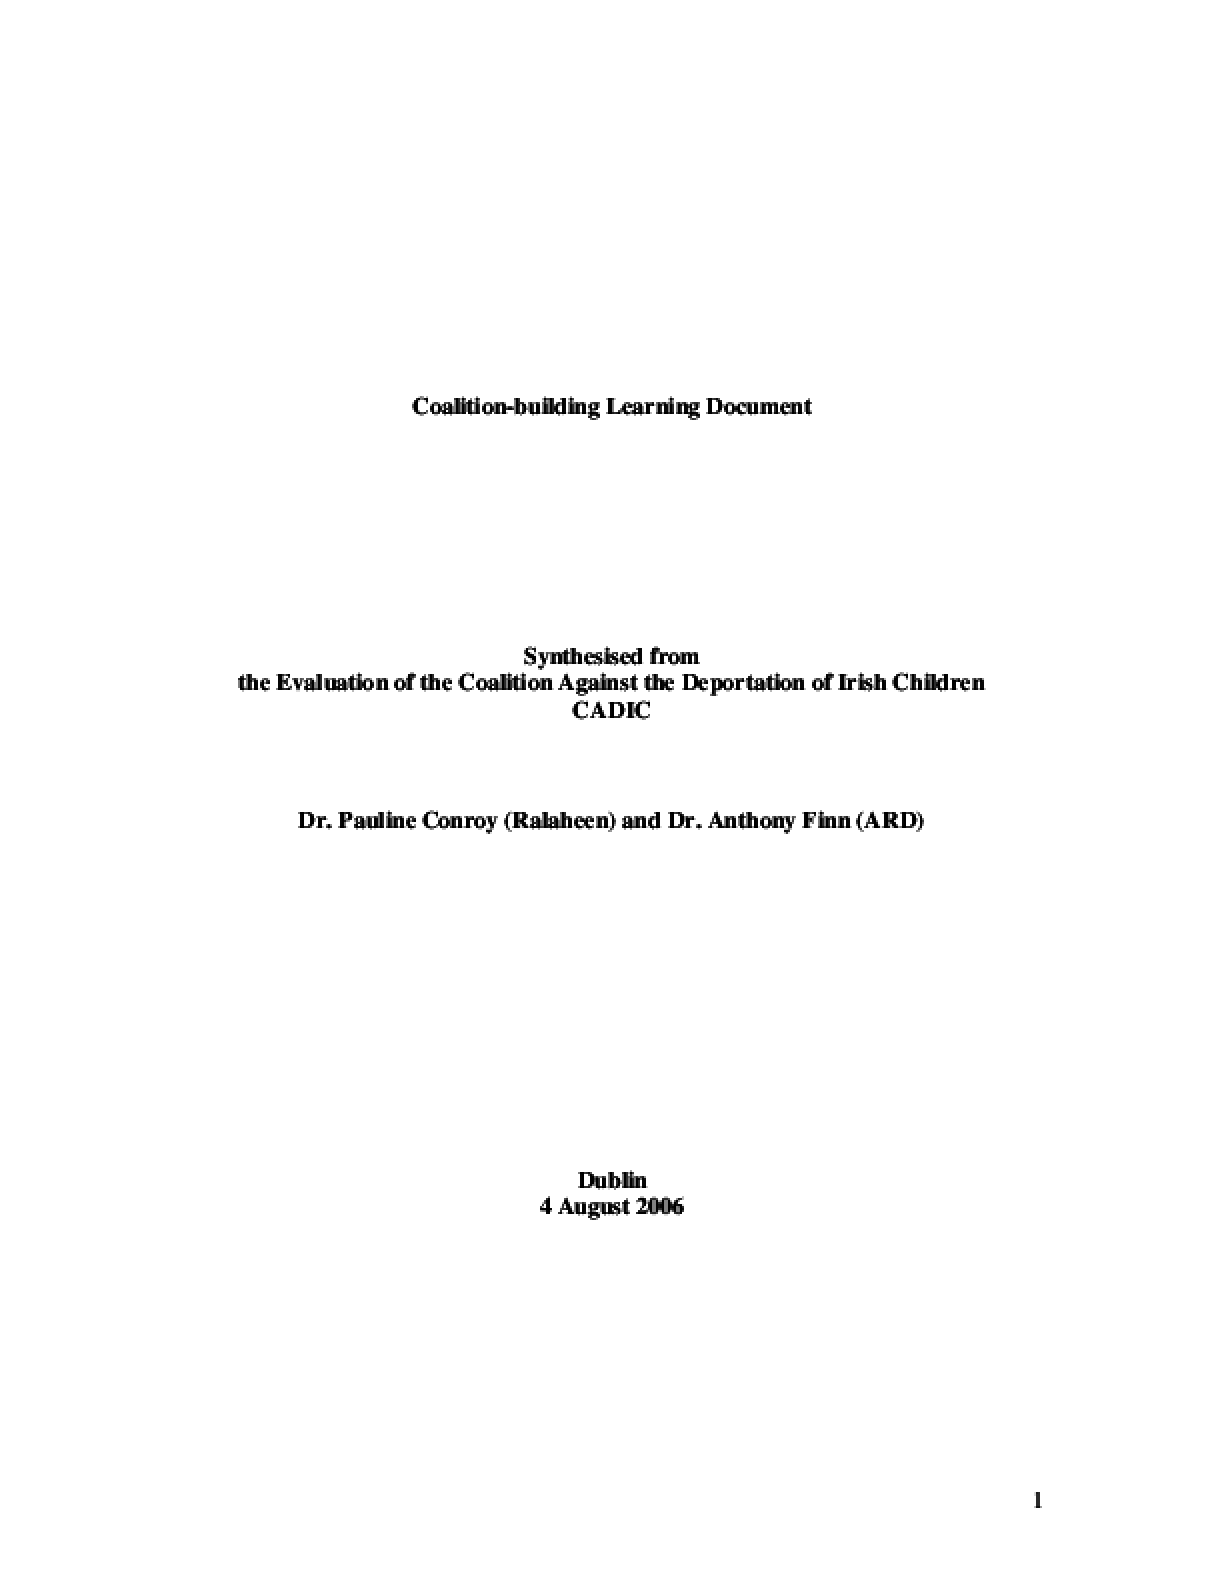 Coalition-building Learning Document: Synthesised from the Evaluation of the Coalition Against the Deportation of Irish Children CADIC